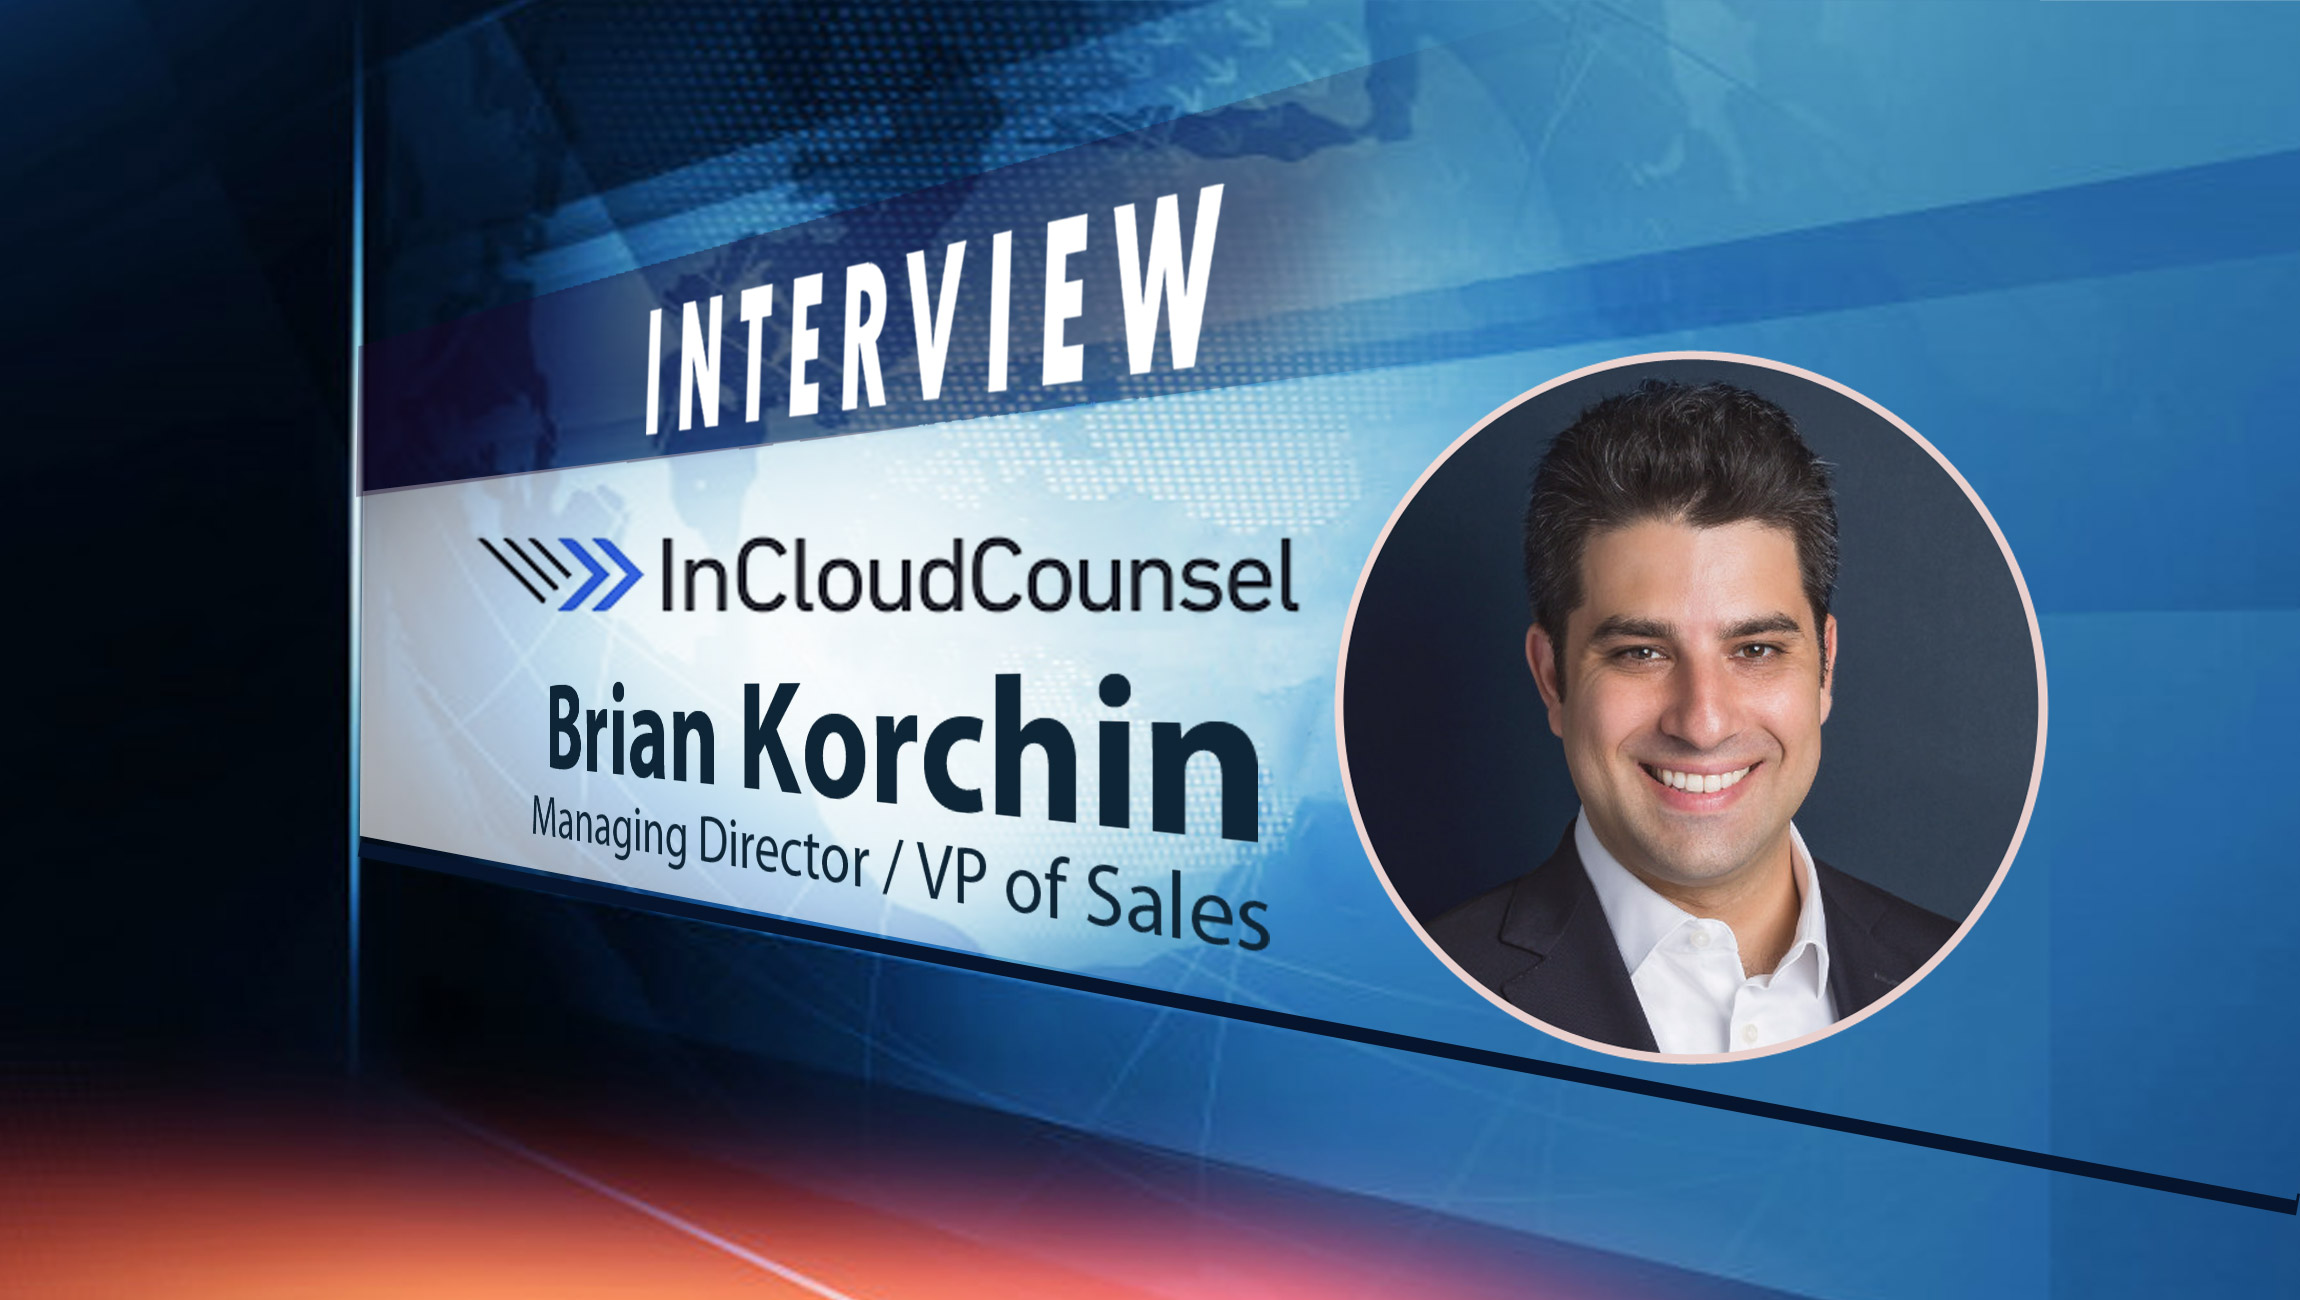 SalesTechStar Interview with Brian Korchin, Managing Director and VP of Sales at InCloudCounsel